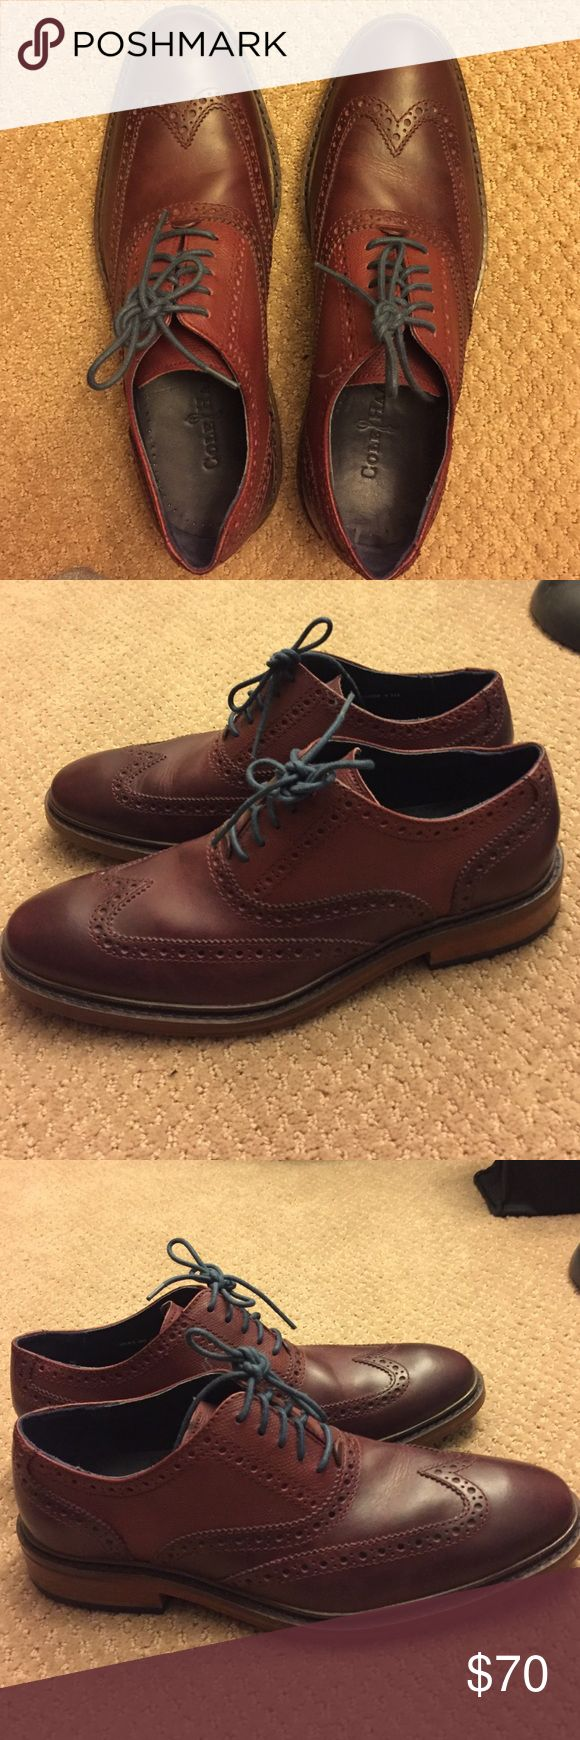 Cole Haan Great Jones Wingtip Oxford Cole Haan Great Jones wingtip oxfords for sale! Shoes are in like-new condition and come in the sequioa color. Cole Haan Shoes Oxfords & Derbys